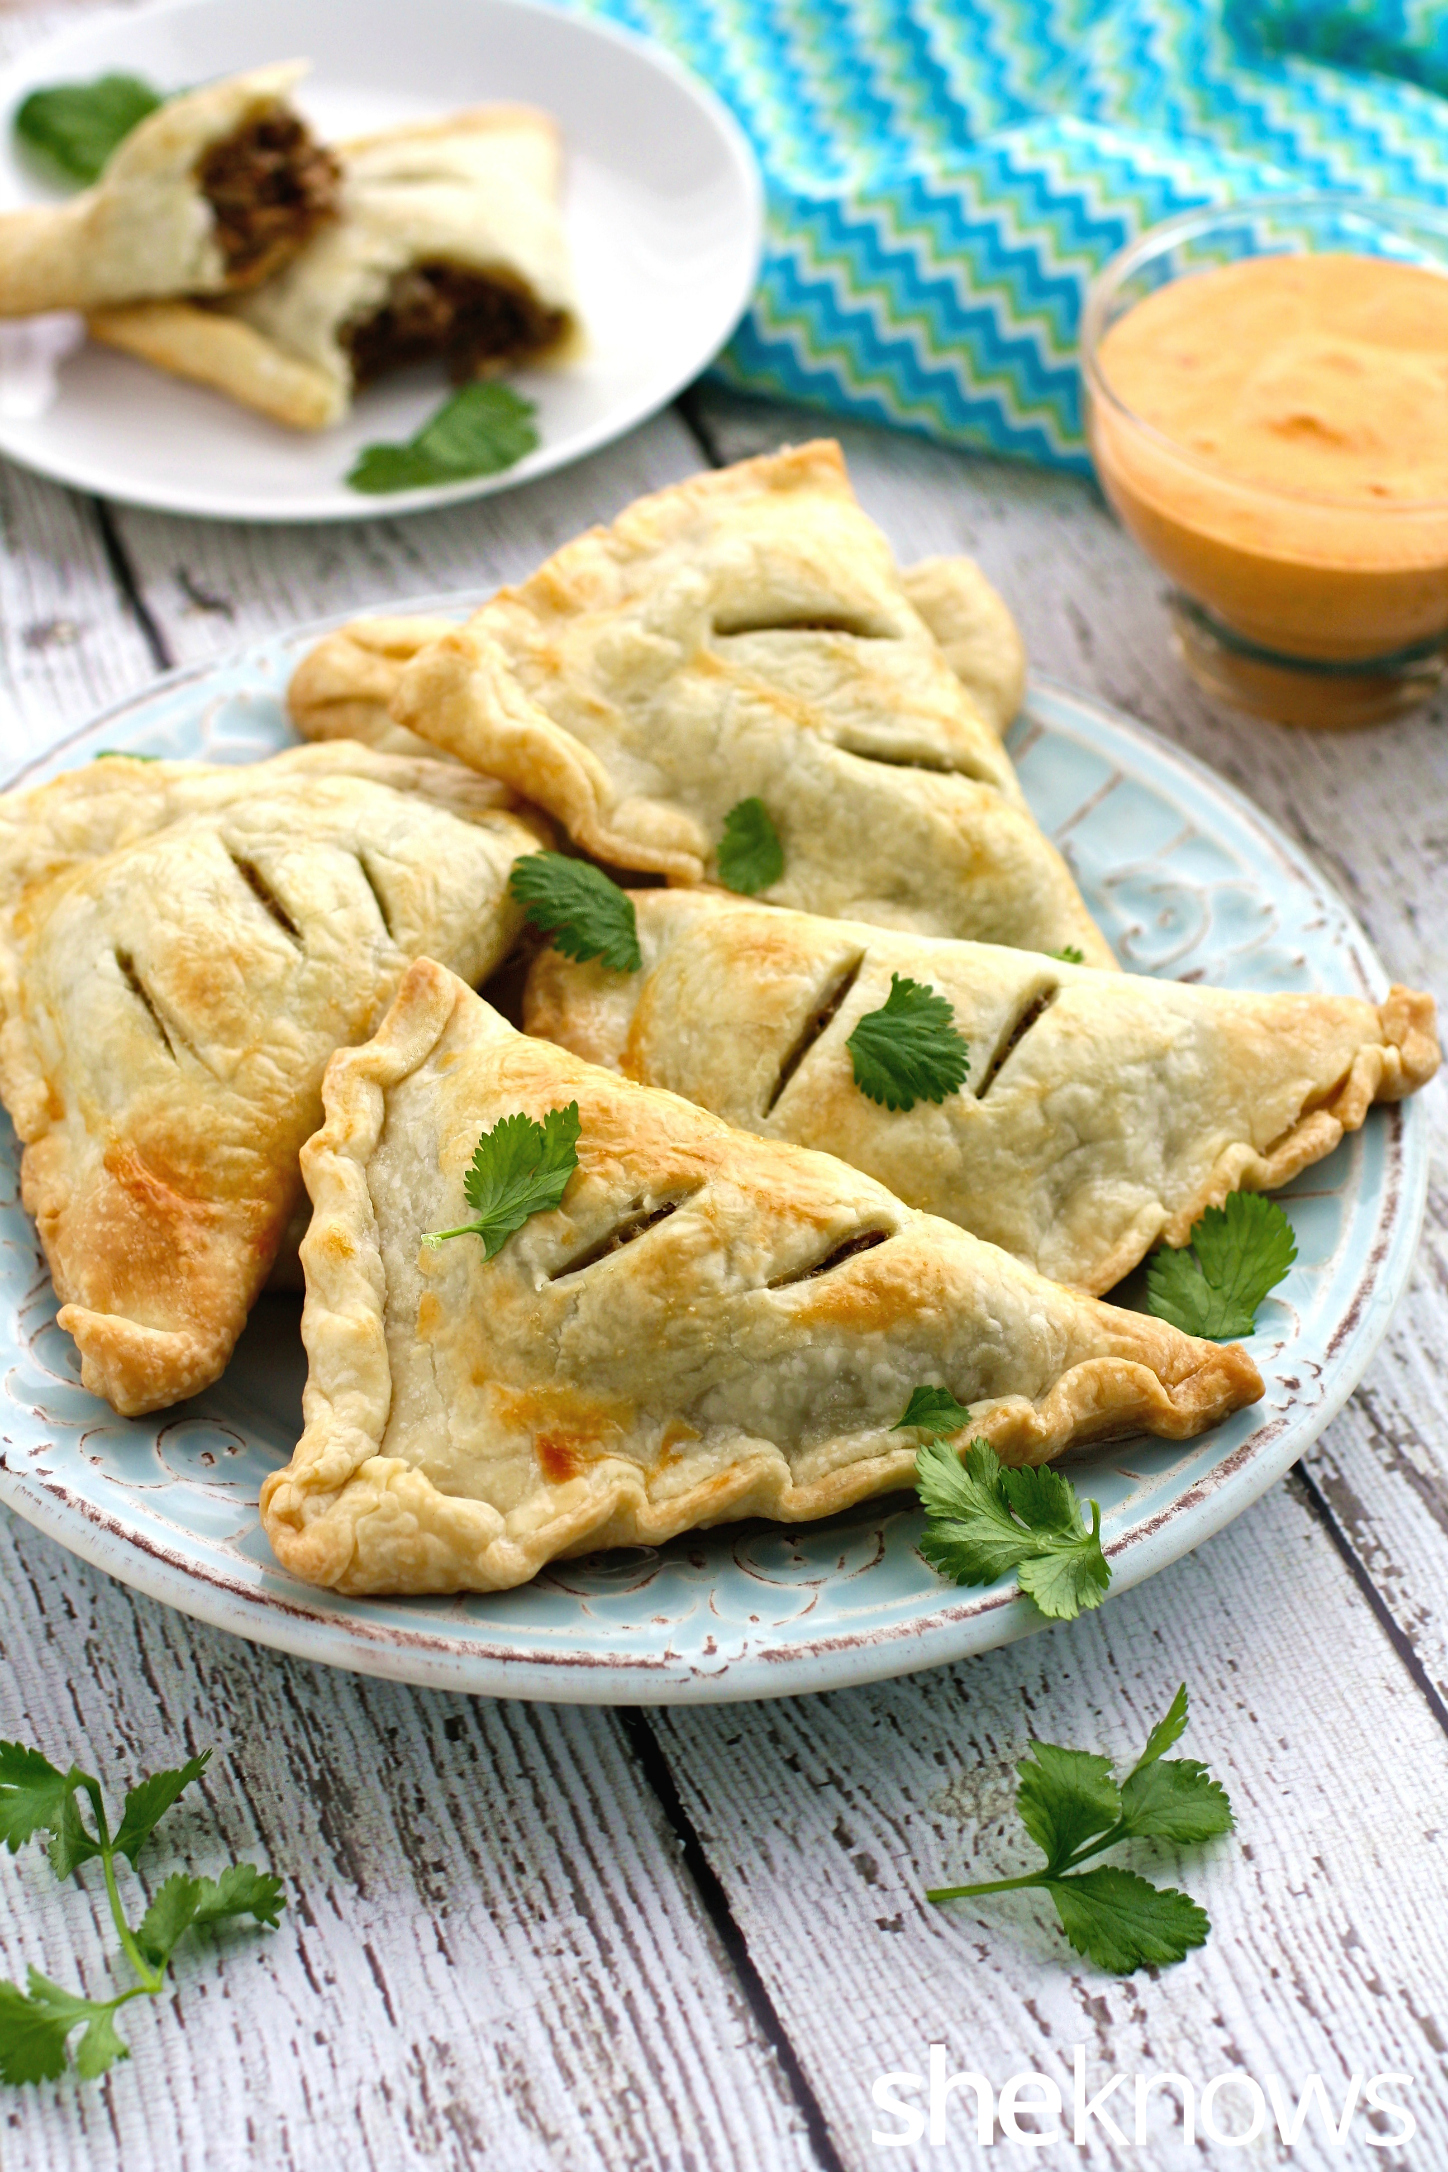 Serve a platter of these fun and filling lentil and mushroom empanadas with creamy roasted red pepper sauce